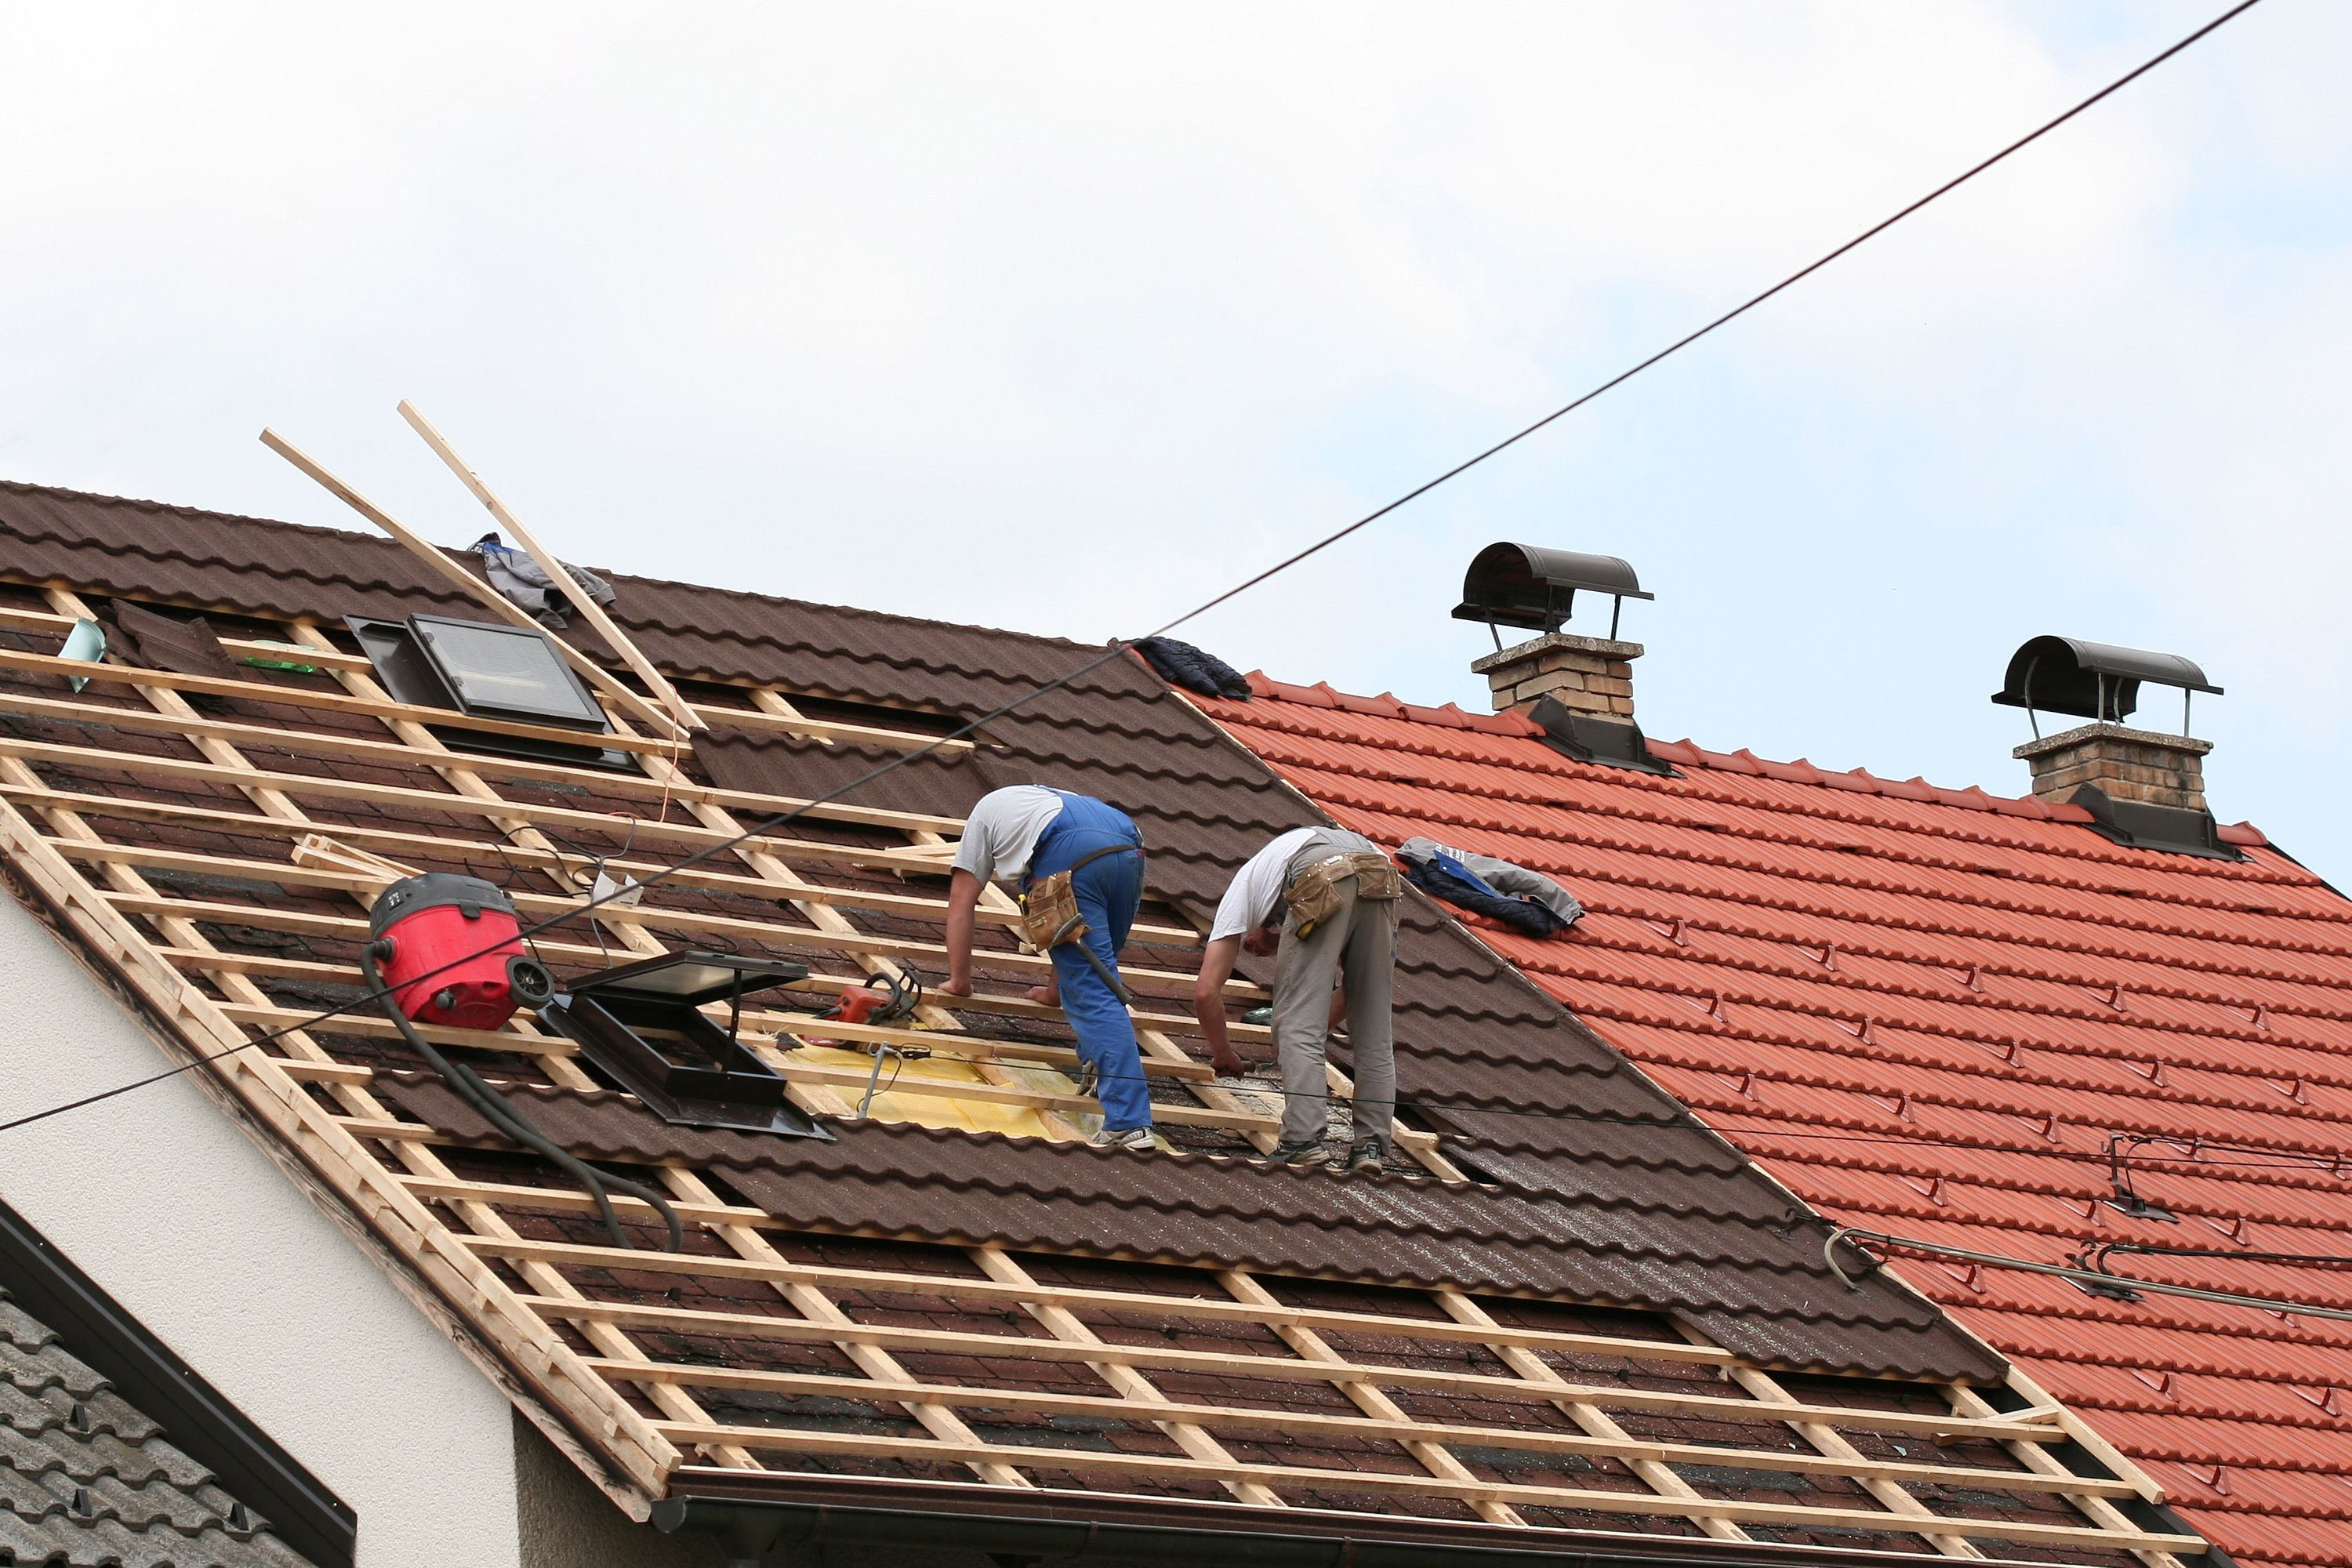 Replace shingles on roof - Roof Repairing Is Not An Easy Task To Do It Needs A Professional Or A